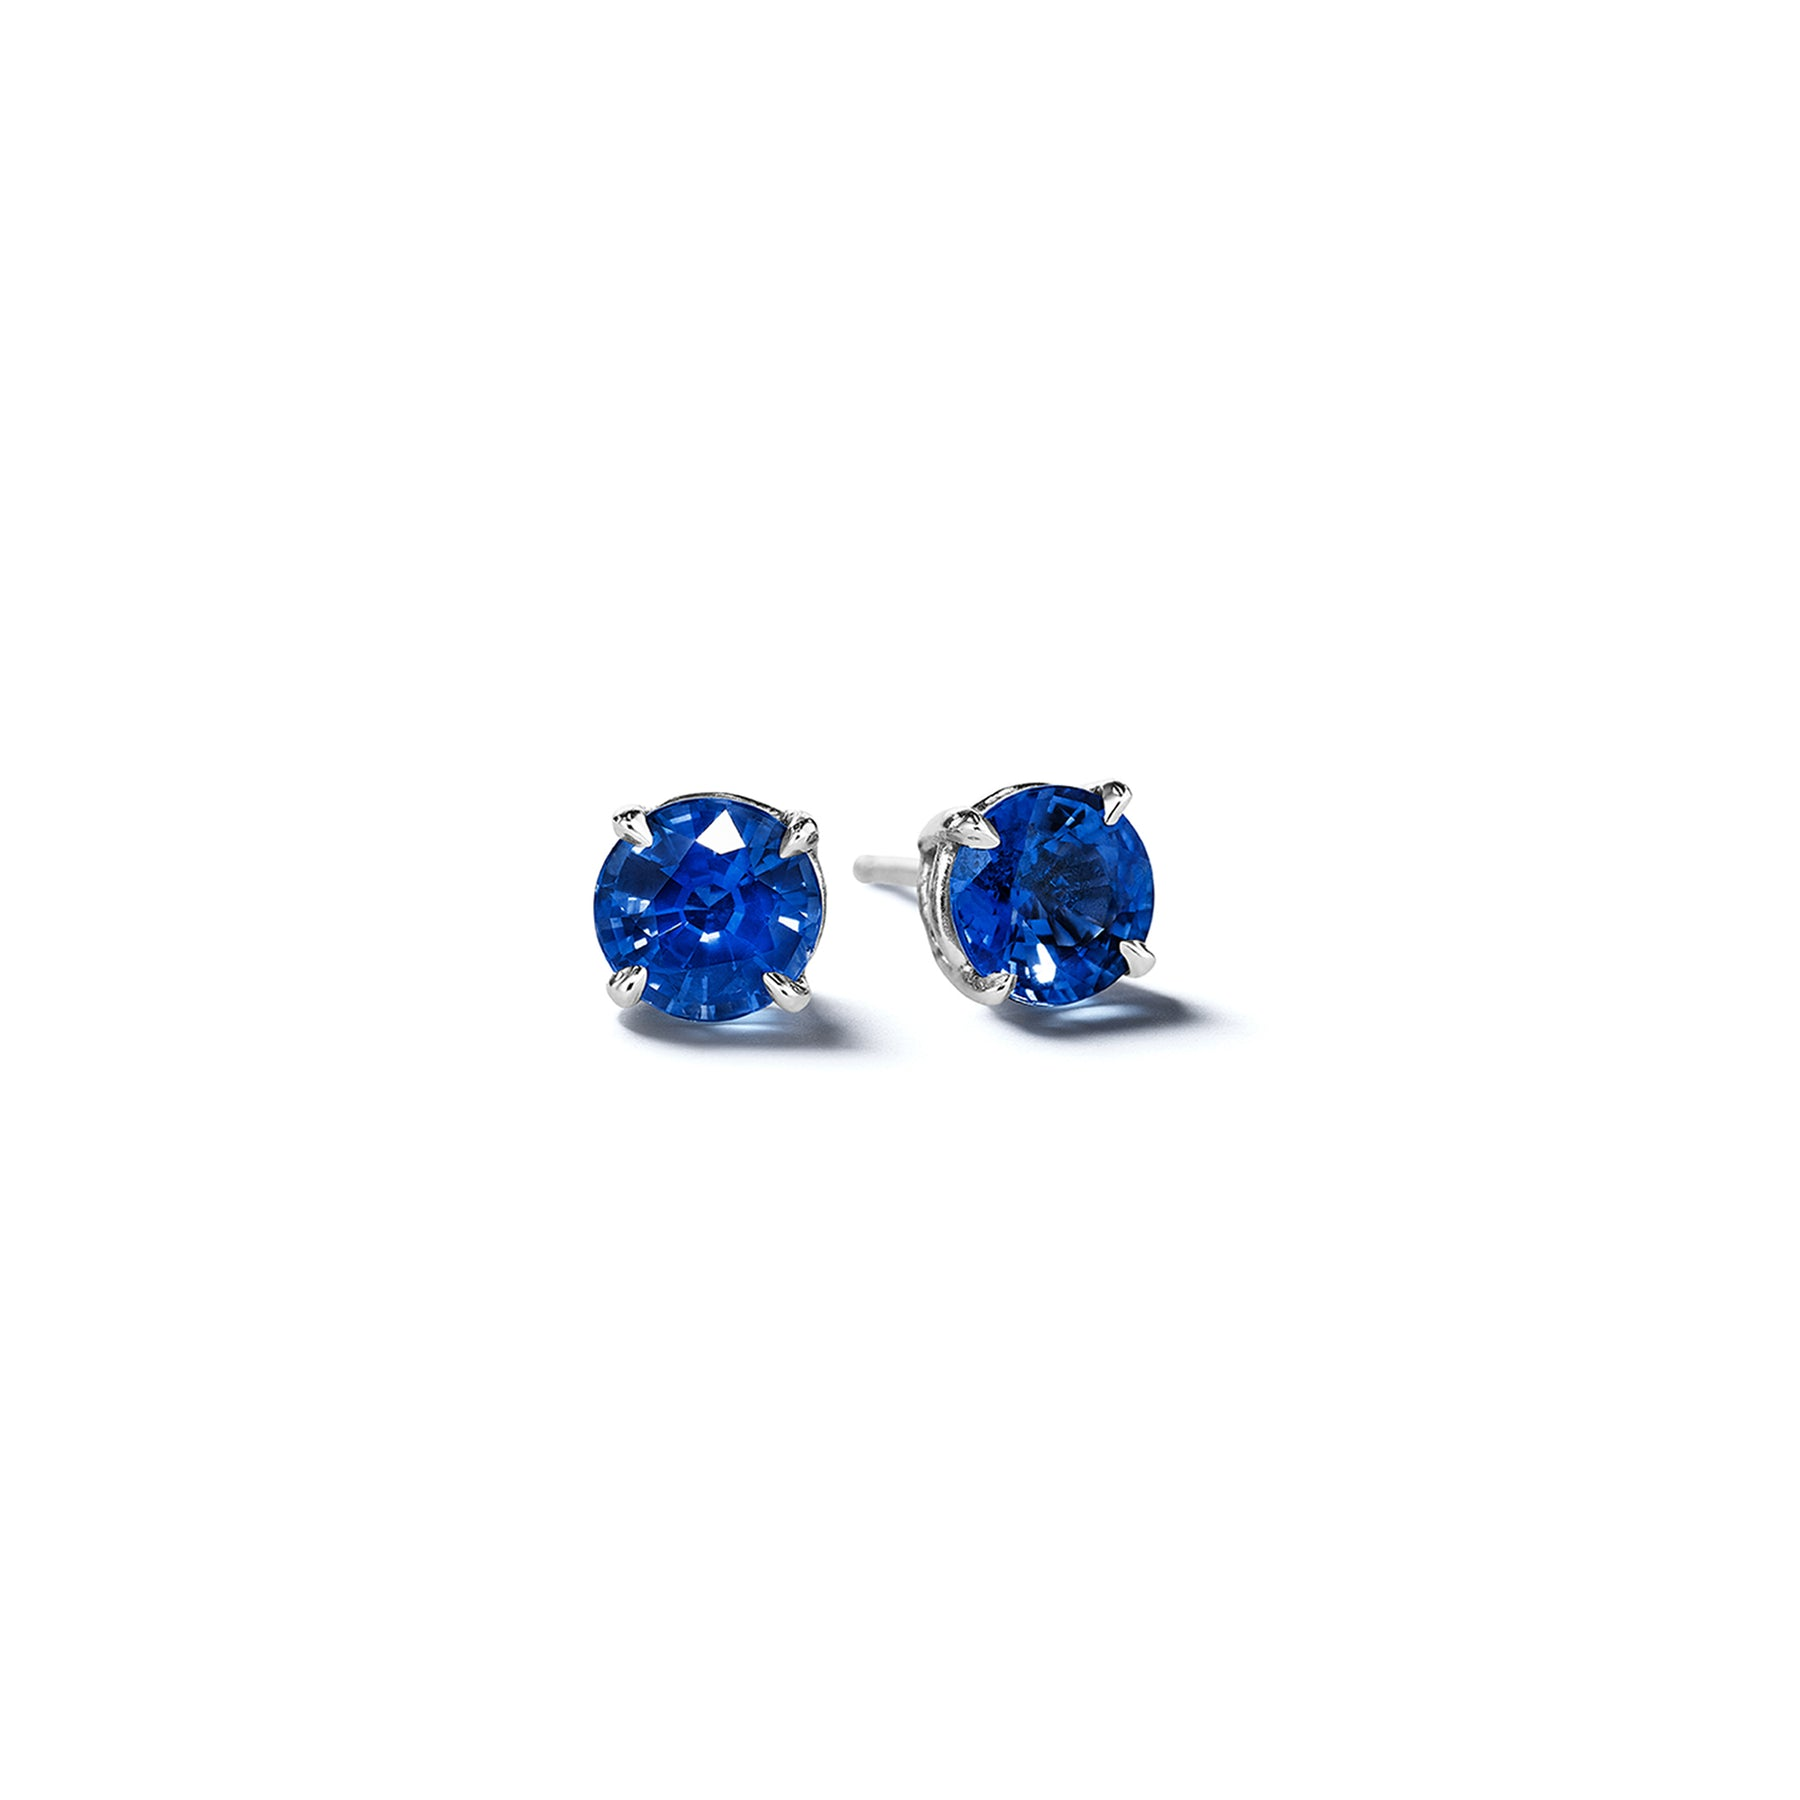 Mimi So Round Brilliant Sapphire Stud Earrings_18k White Gold